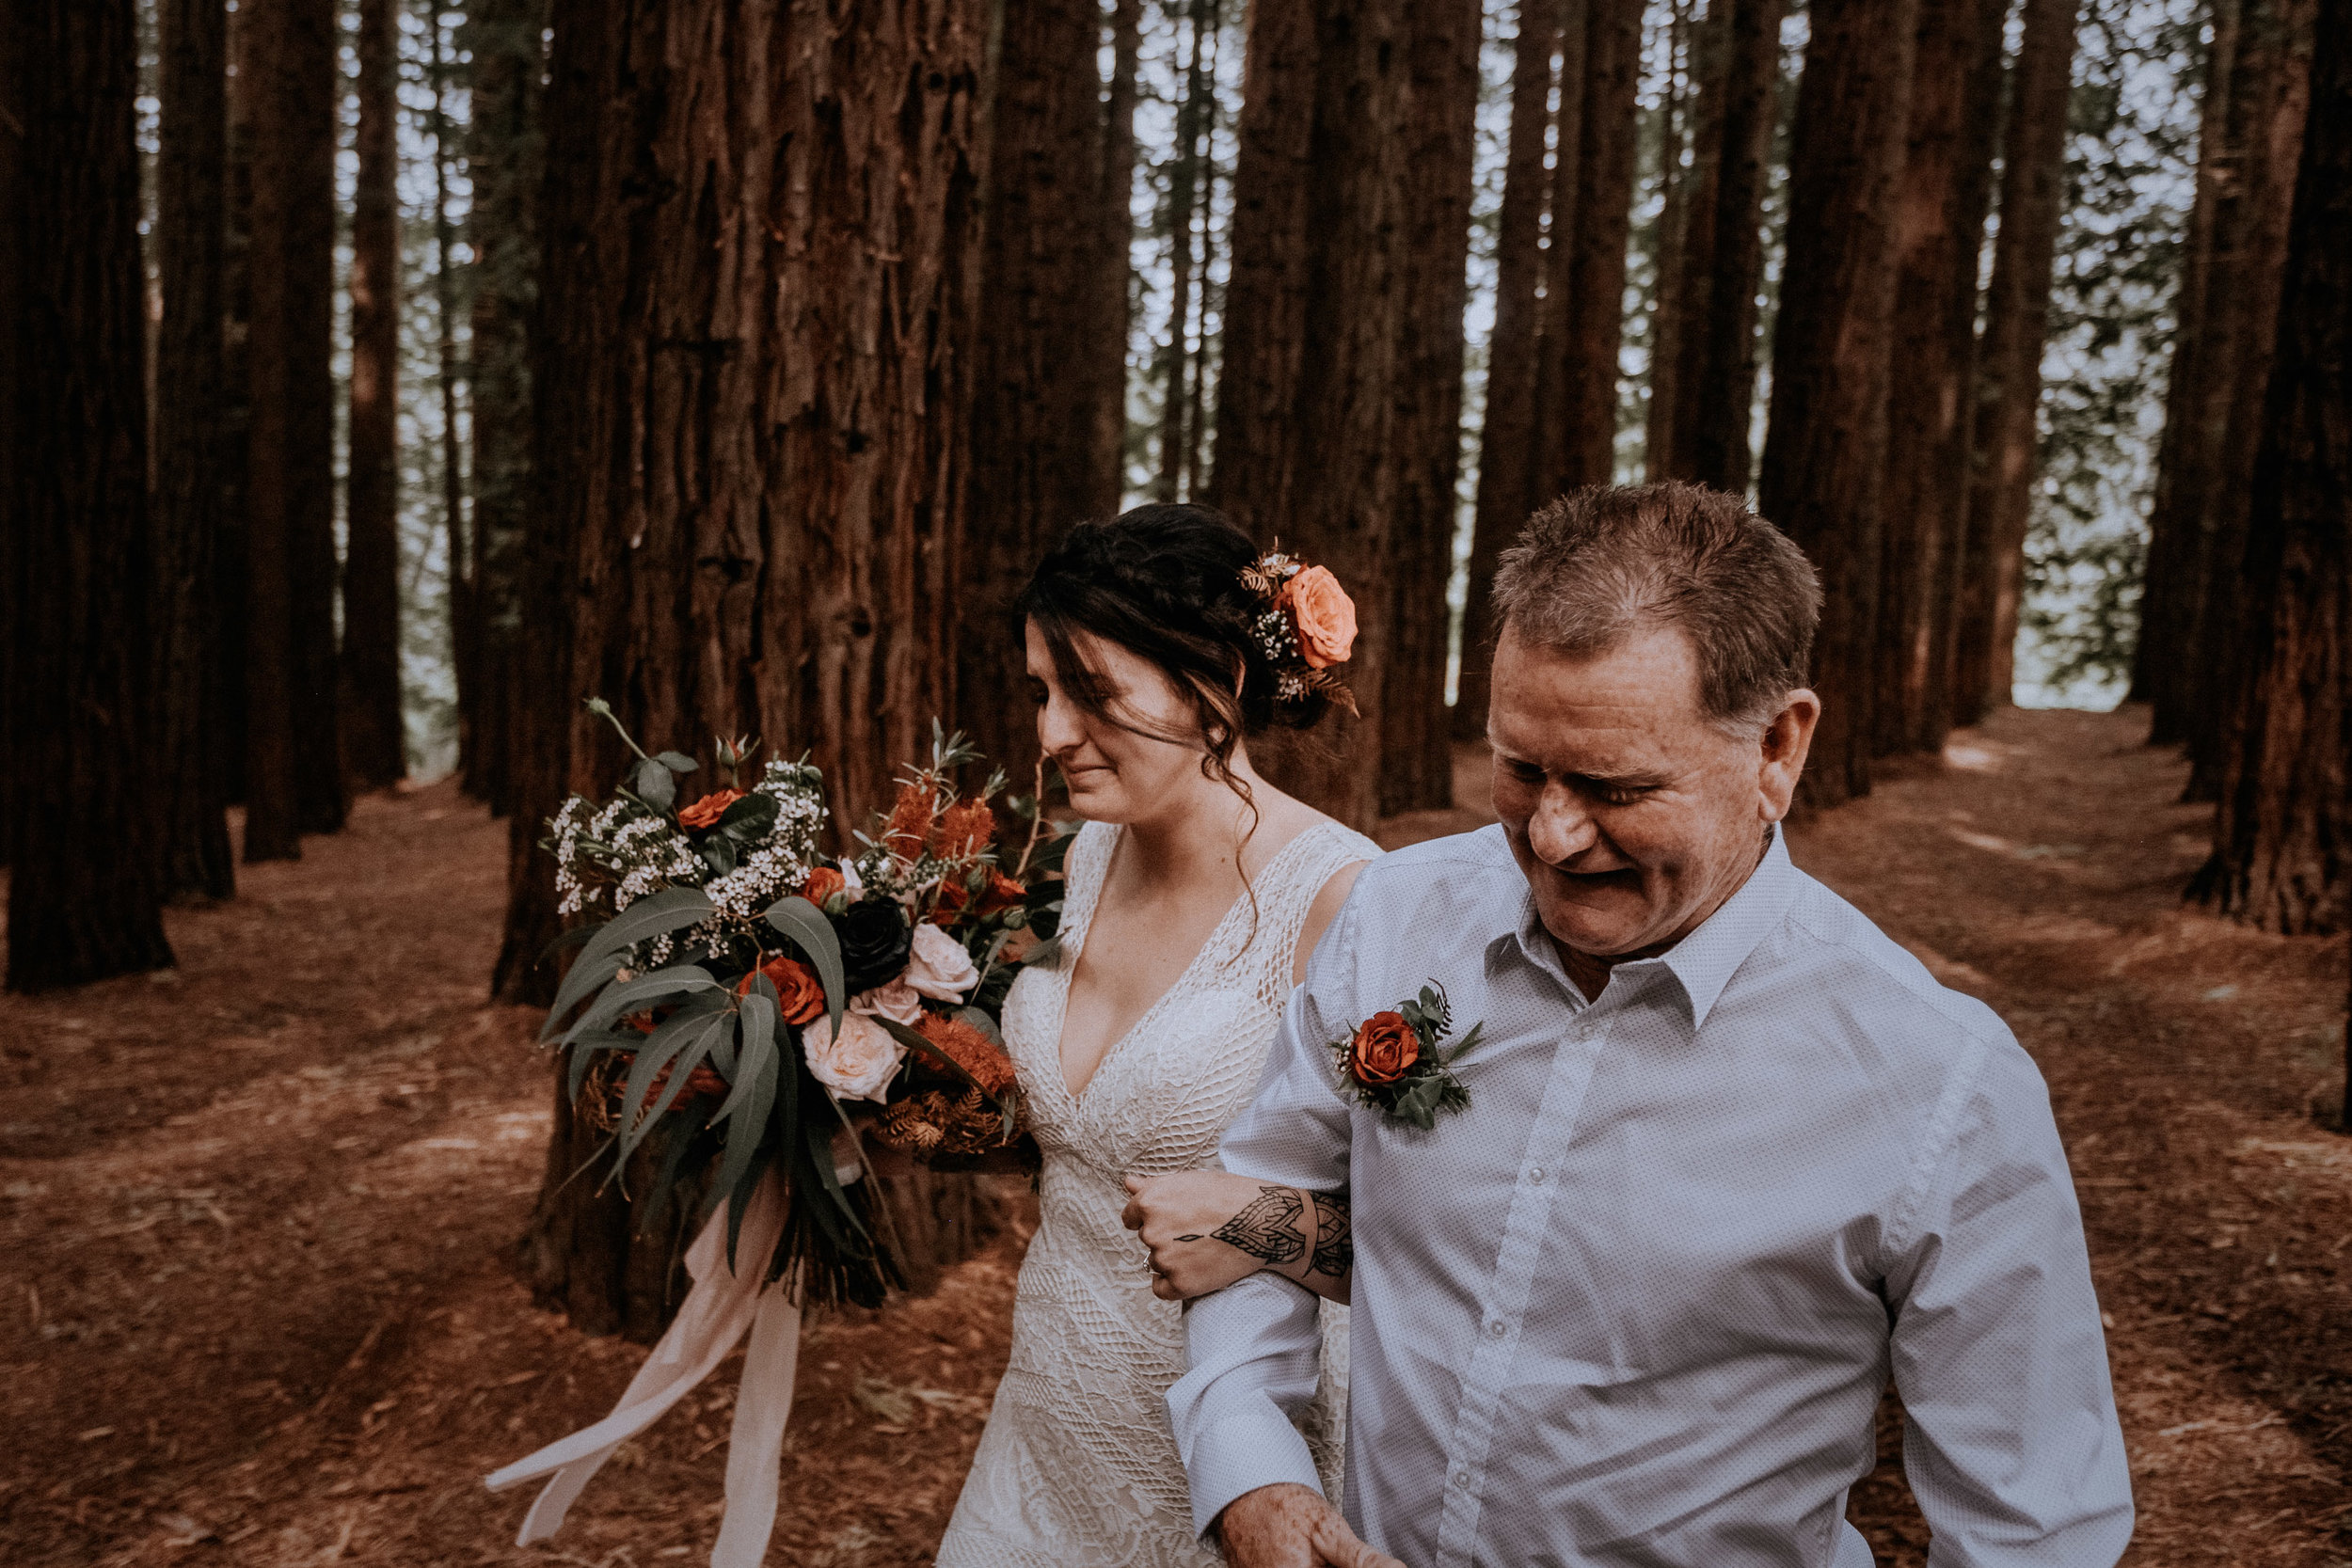 A bride arrives to her small wedding, candidly captured with intimate vibes, in the Redwood Forest in Warburton, near Melbourne